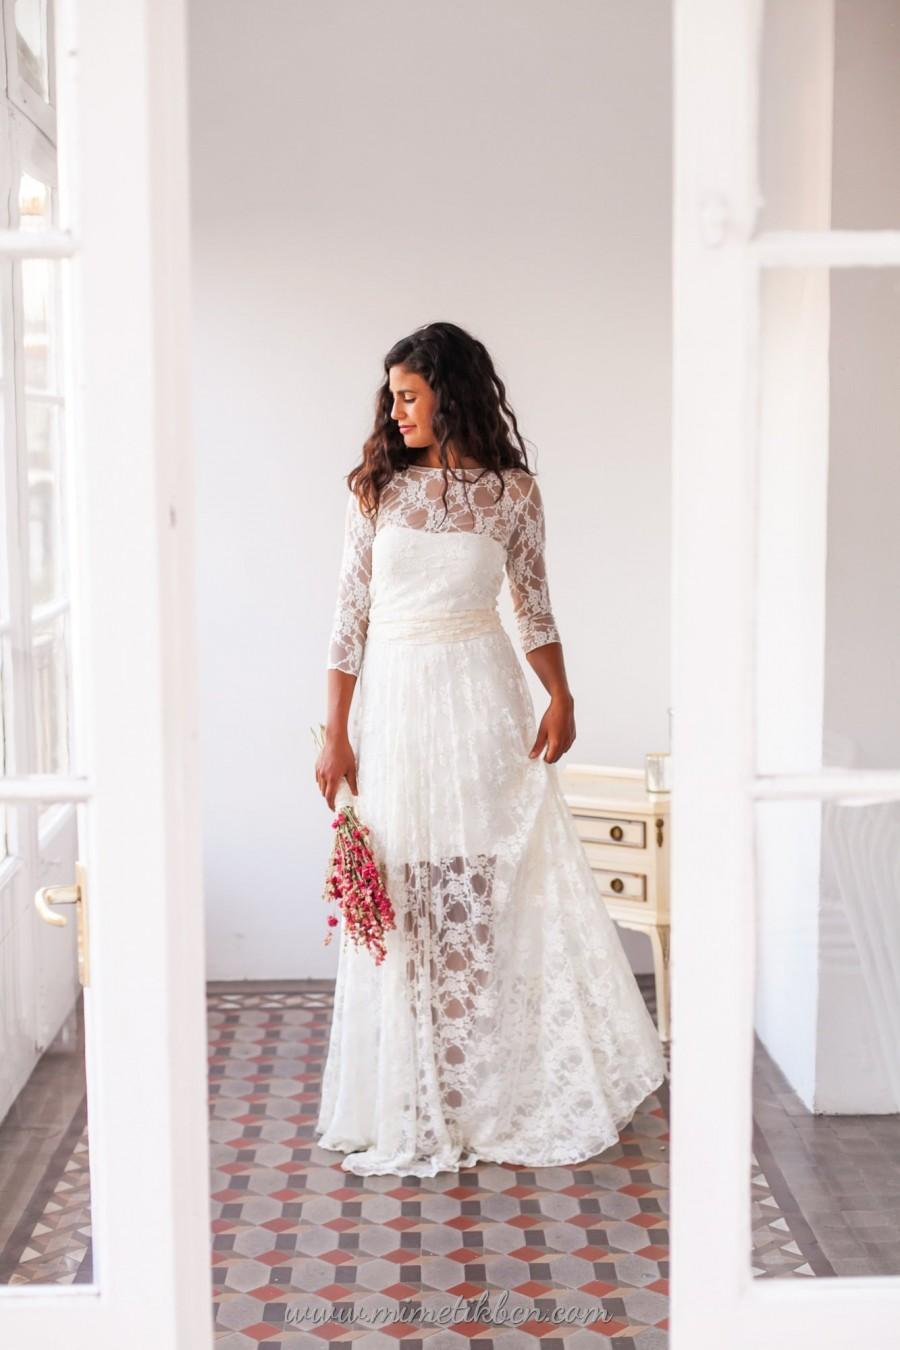 Hippie Wedding Dress Lace Illusion Lace Retro Wedding Dresses Ivory Lace Sleeves Bridal Gown Wedding Dress Hippie Wedding Dress Lace Boho 2908465 Weddbook